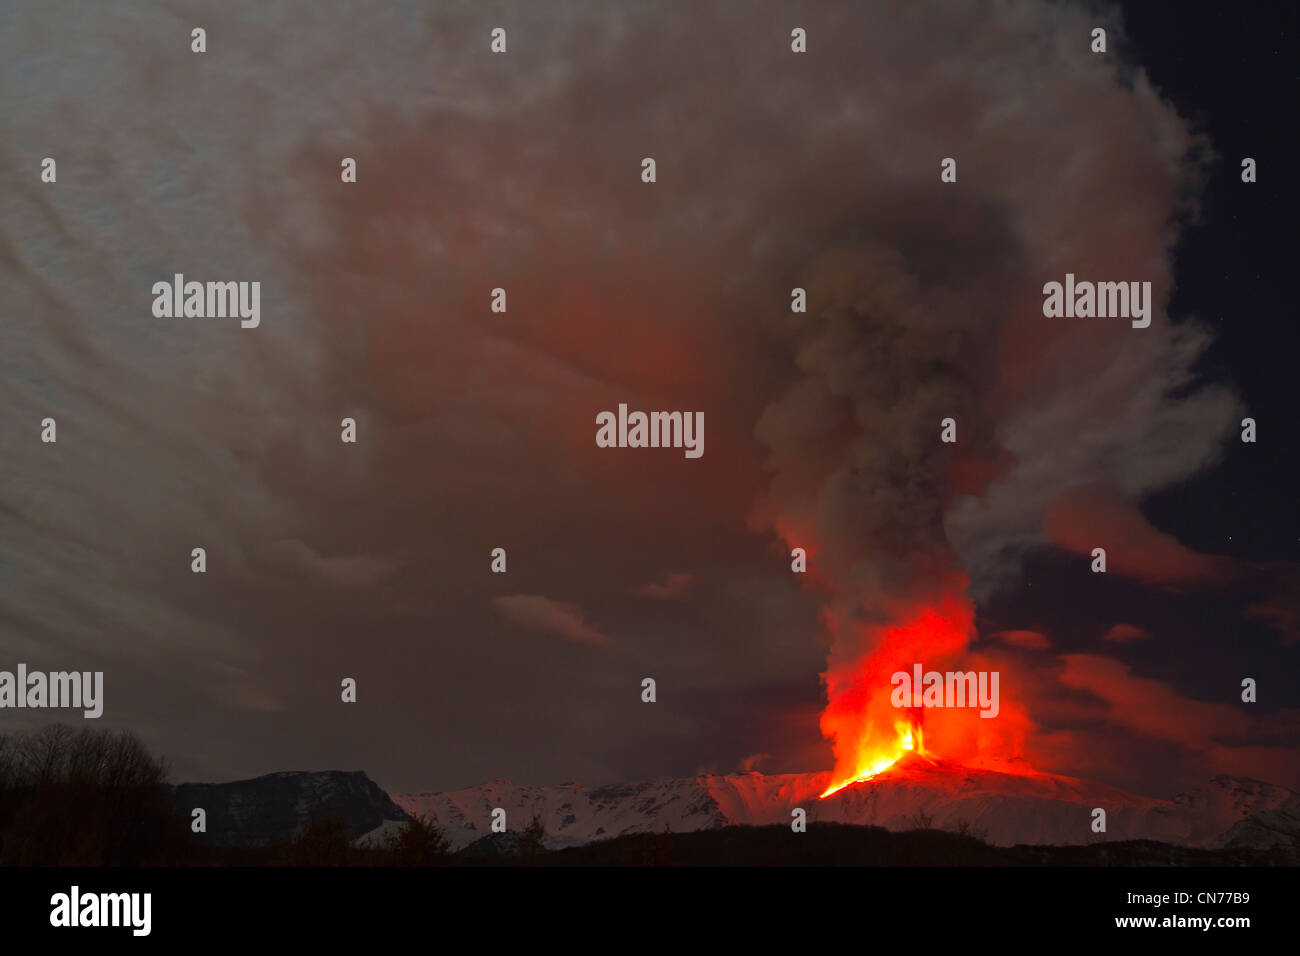 Eruption of Mount Etna, 8-9 February 2012, viewed from Milo, Sicily, Italy - Stock Image